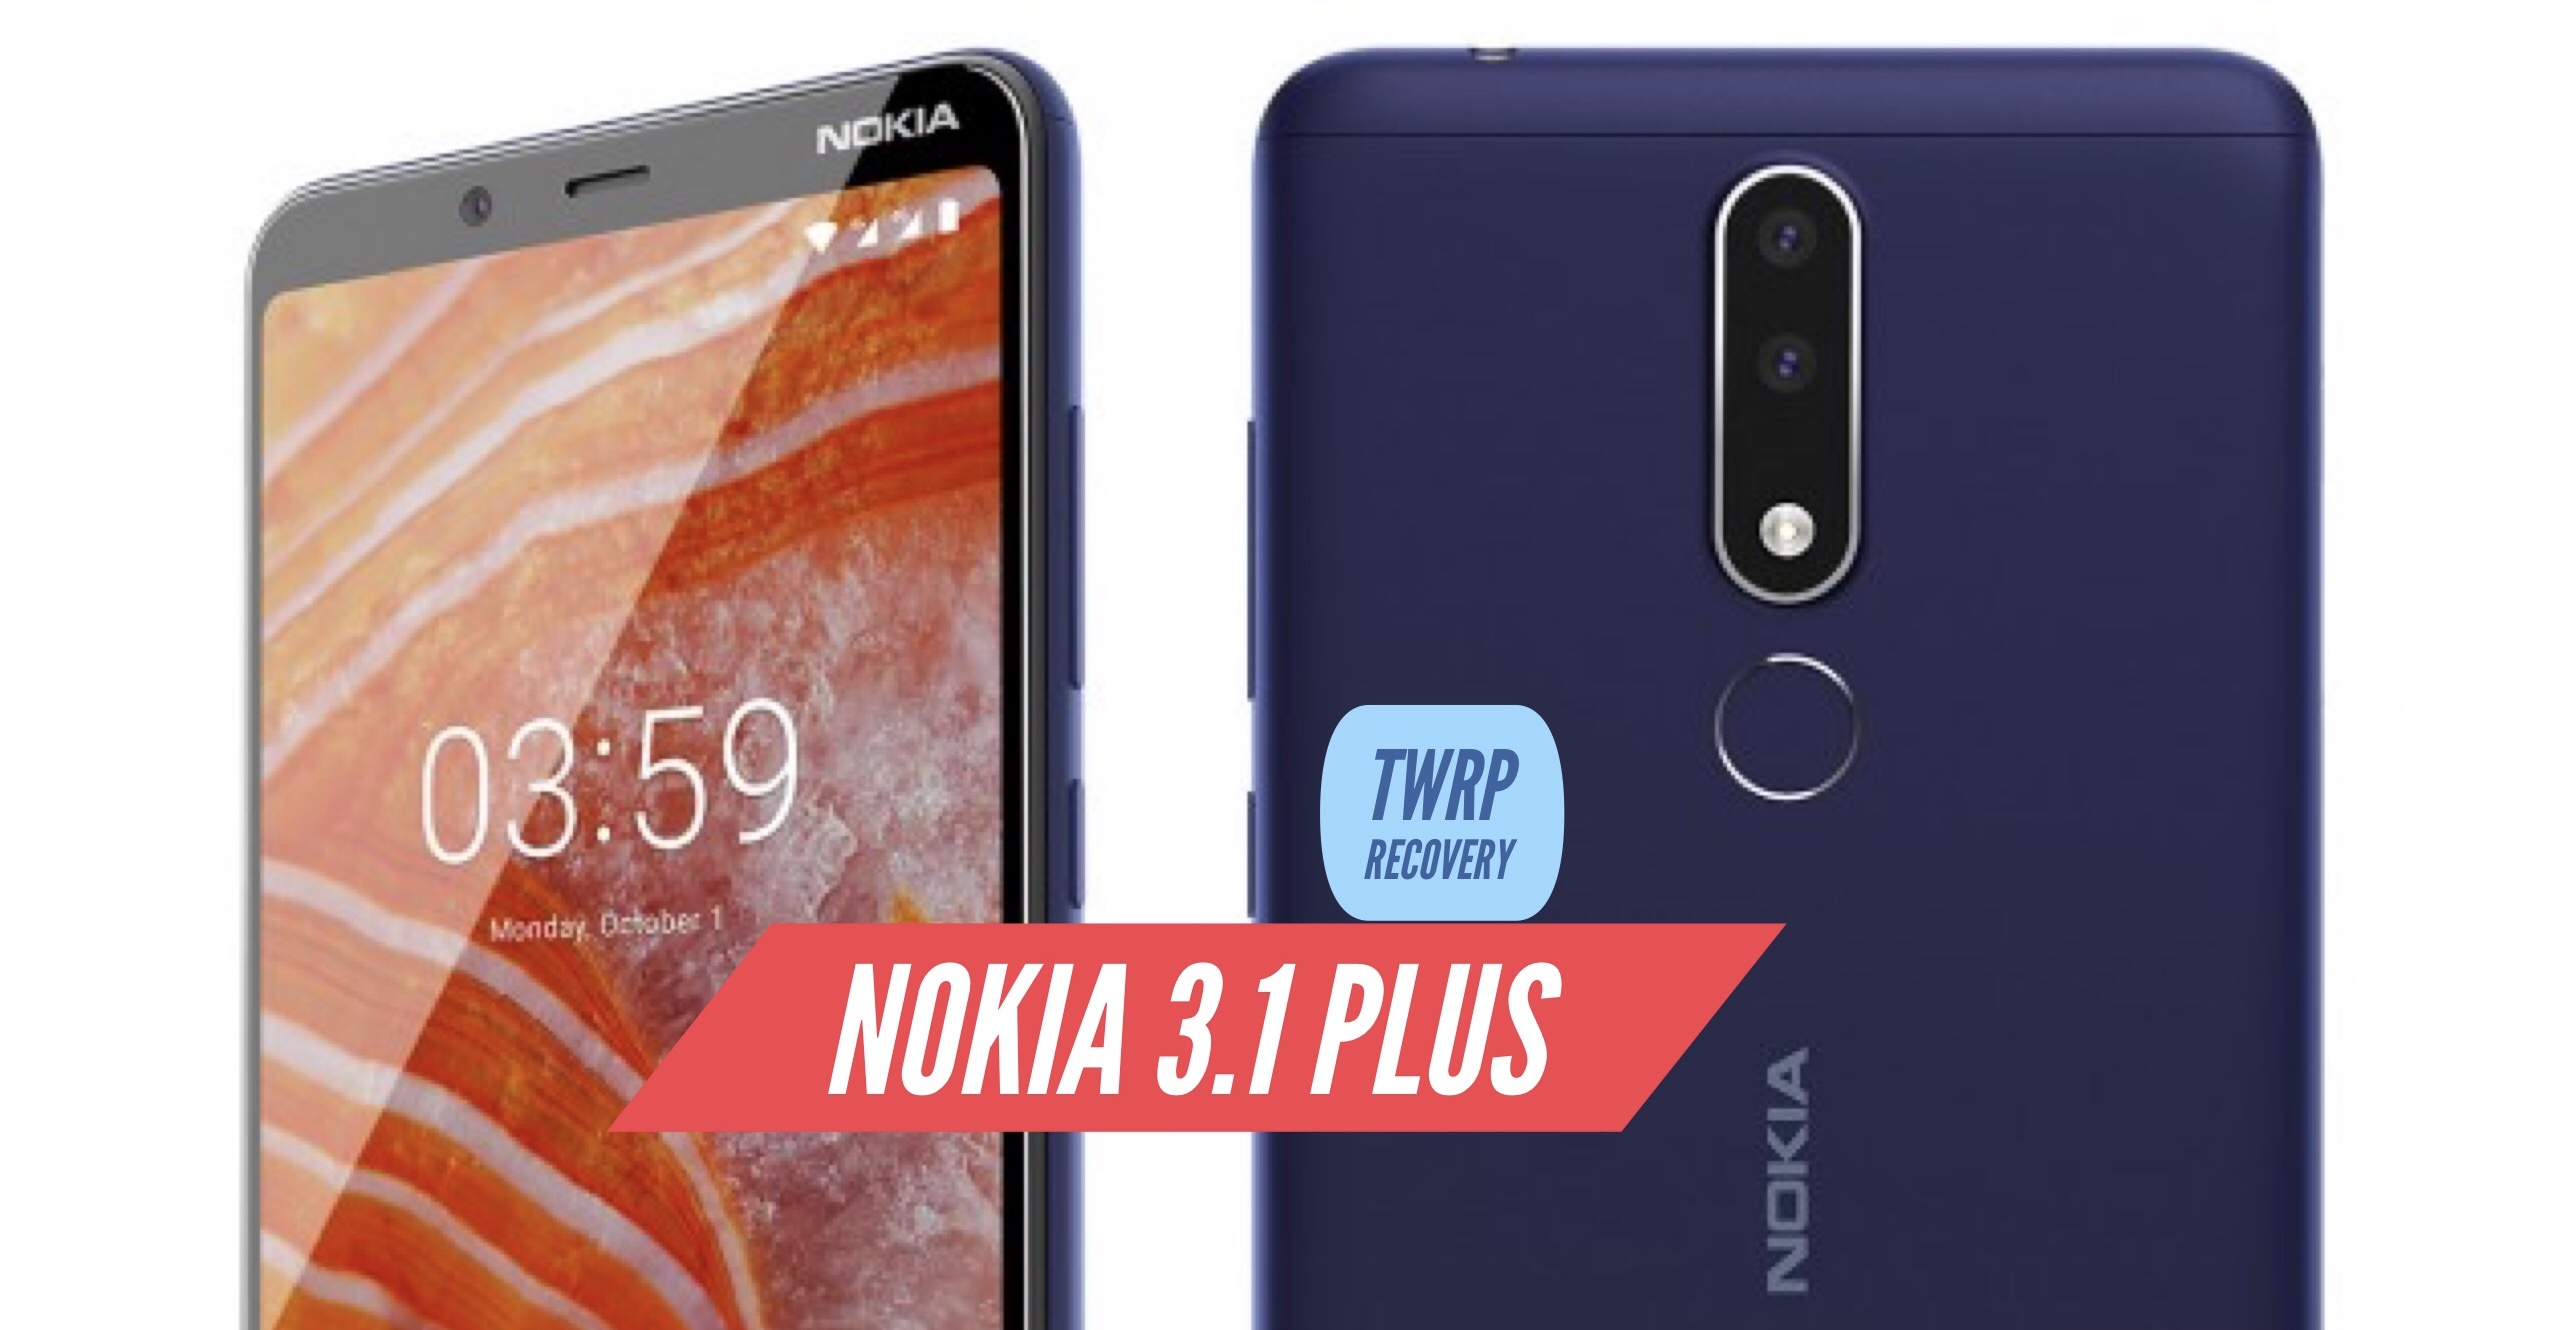 How to Install TWRP Recovery on Nokia 3 1 Plus? Official Guide!